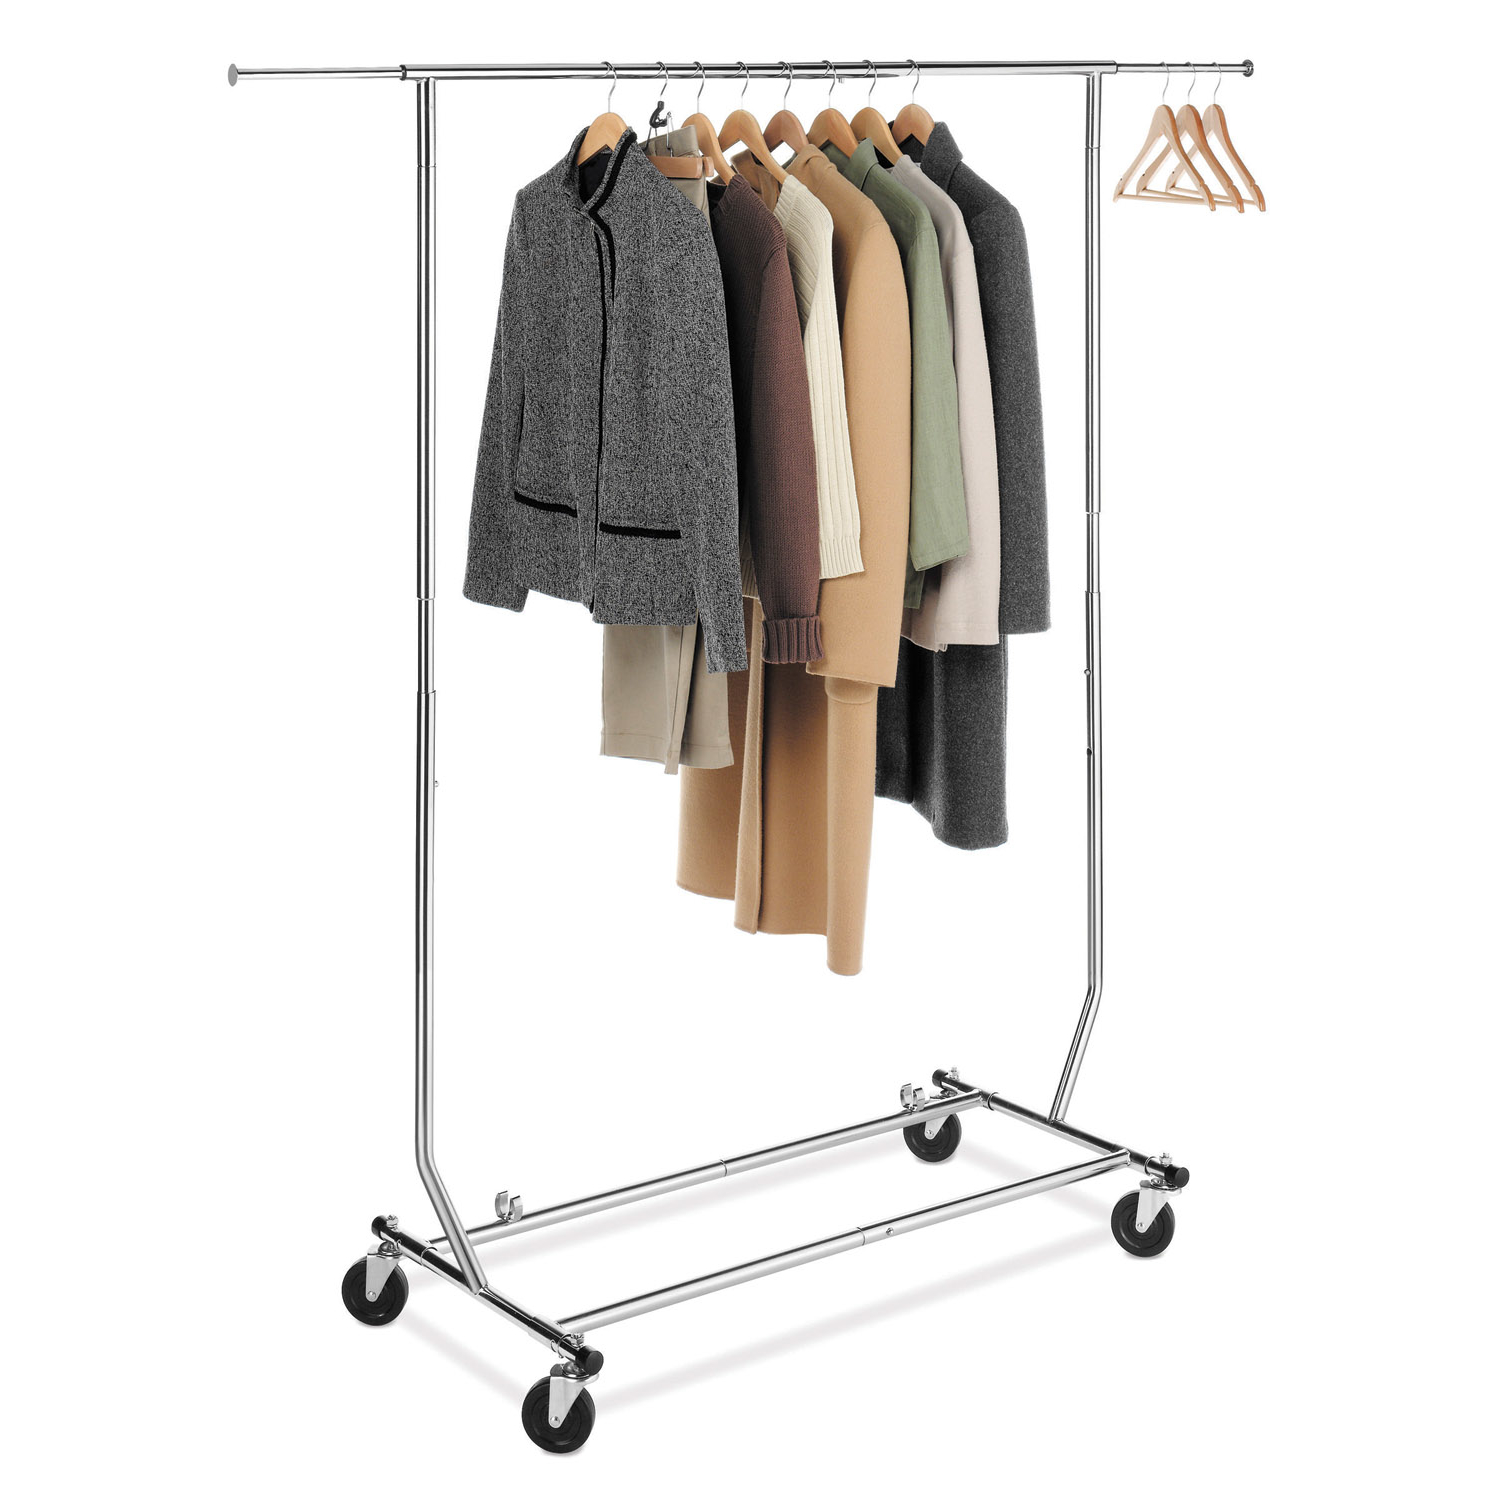 Whitmor Adjustable Rolling Garment Rack Collsapsible Chrome